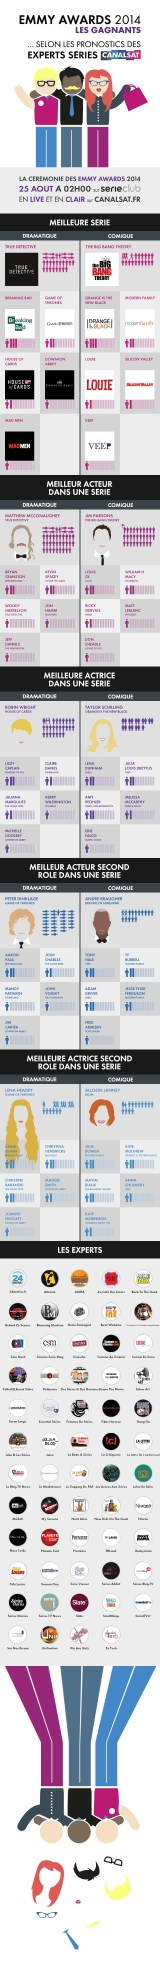 infographie_emmy_awards_master_02_WEB